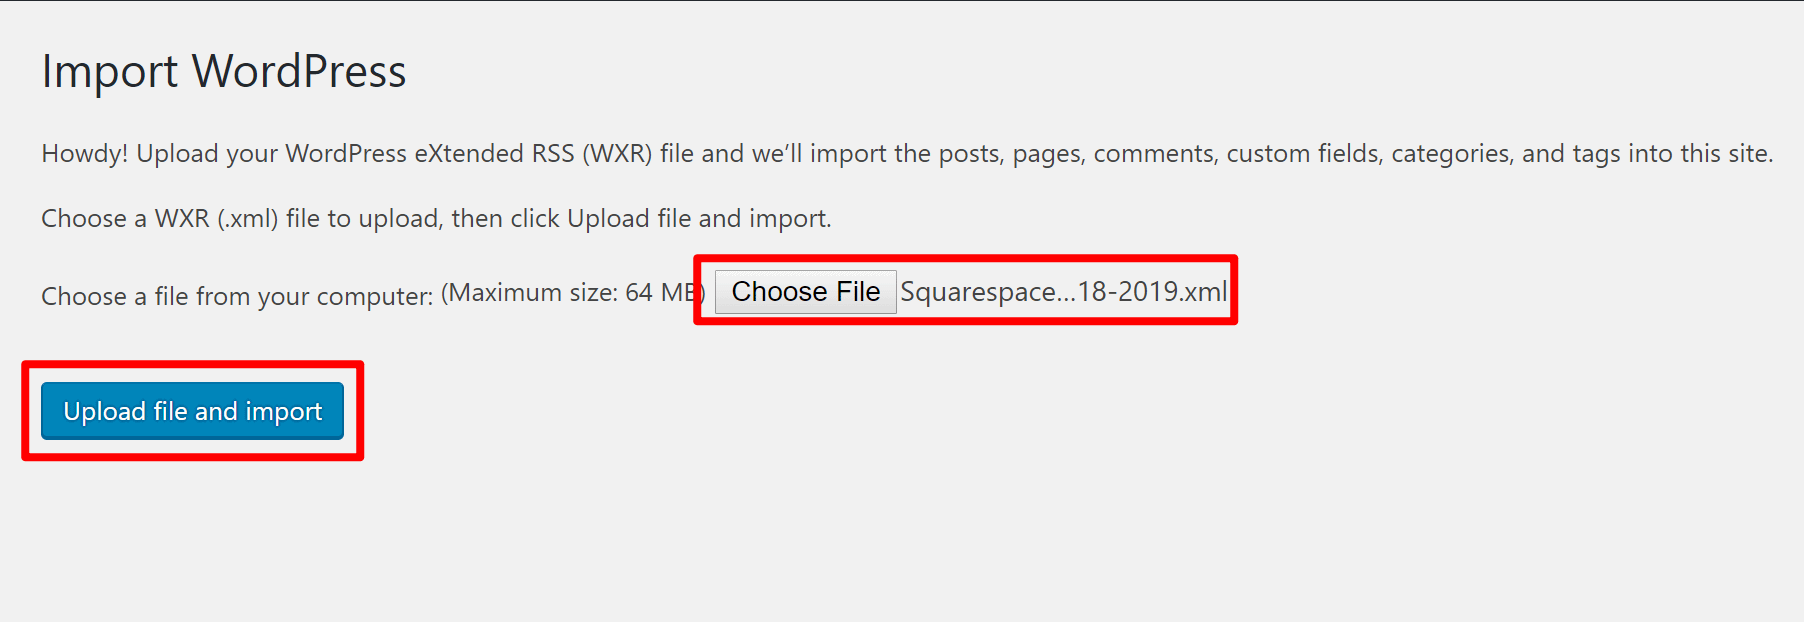 Choose Squarespace export file for WordPress